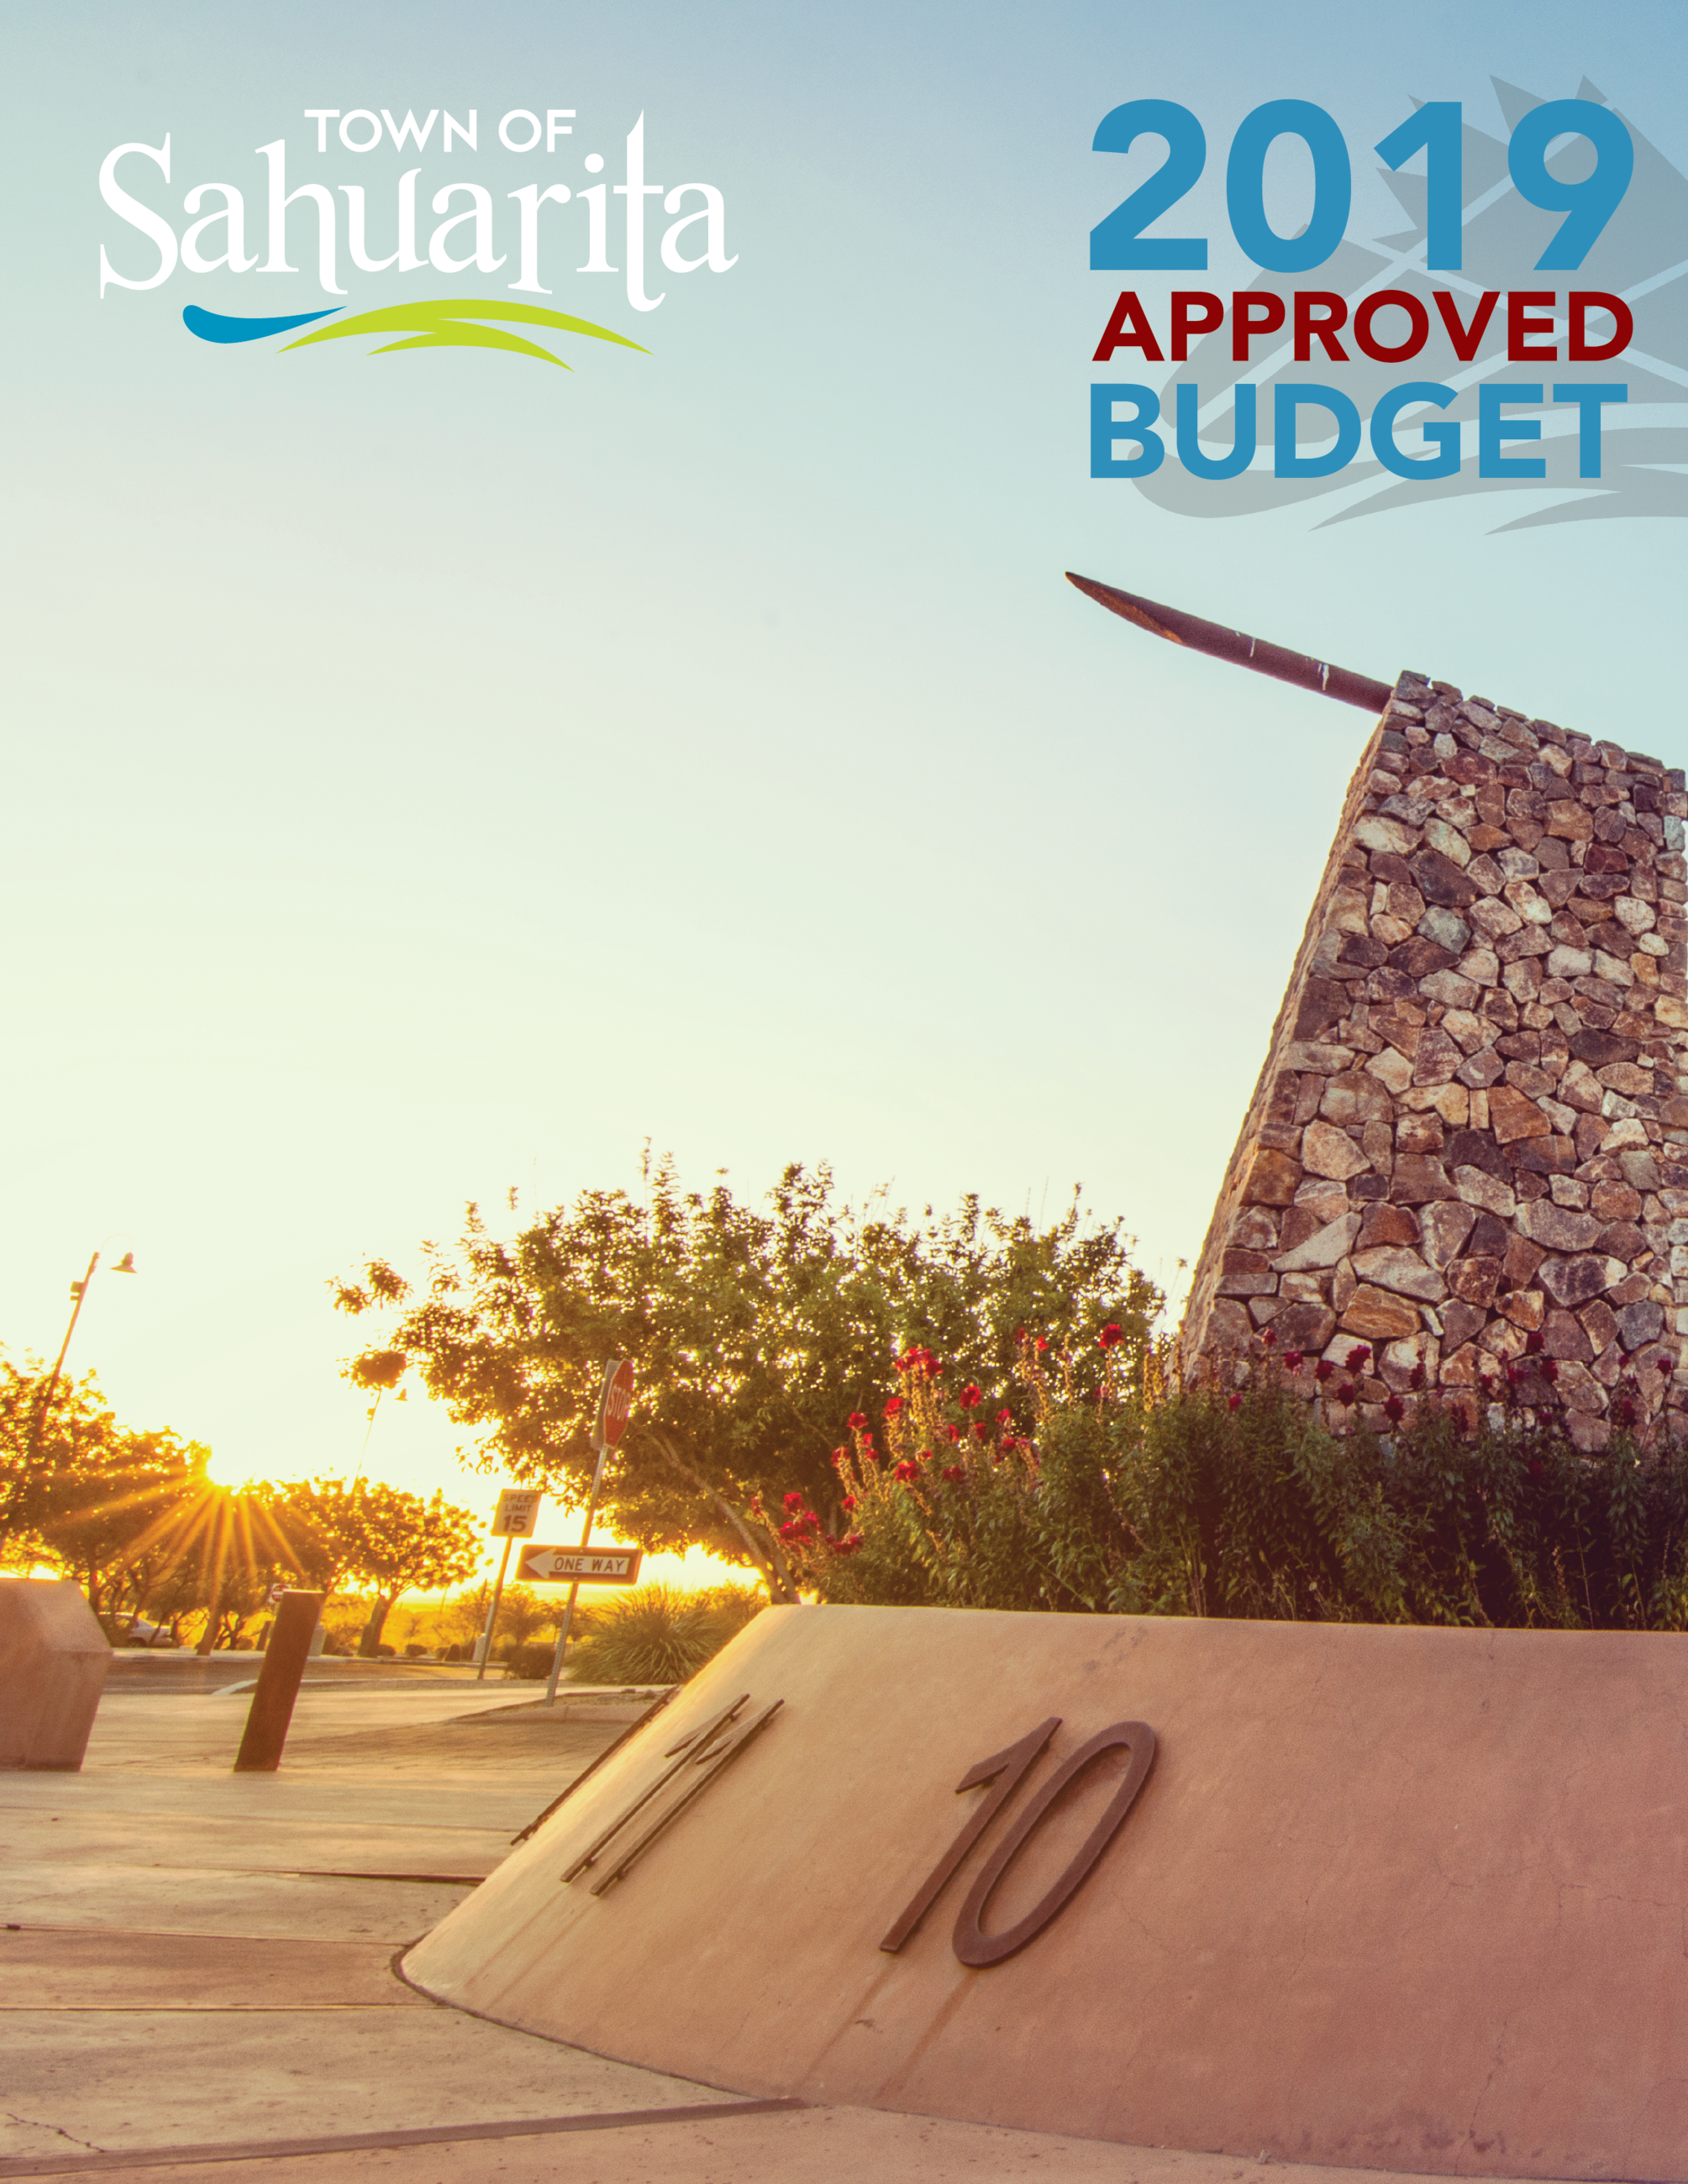 COVER-APPROVED BUDGET-2019 - Sahuarita Town Hall sundial, fountain and flowers in front of Town Hall